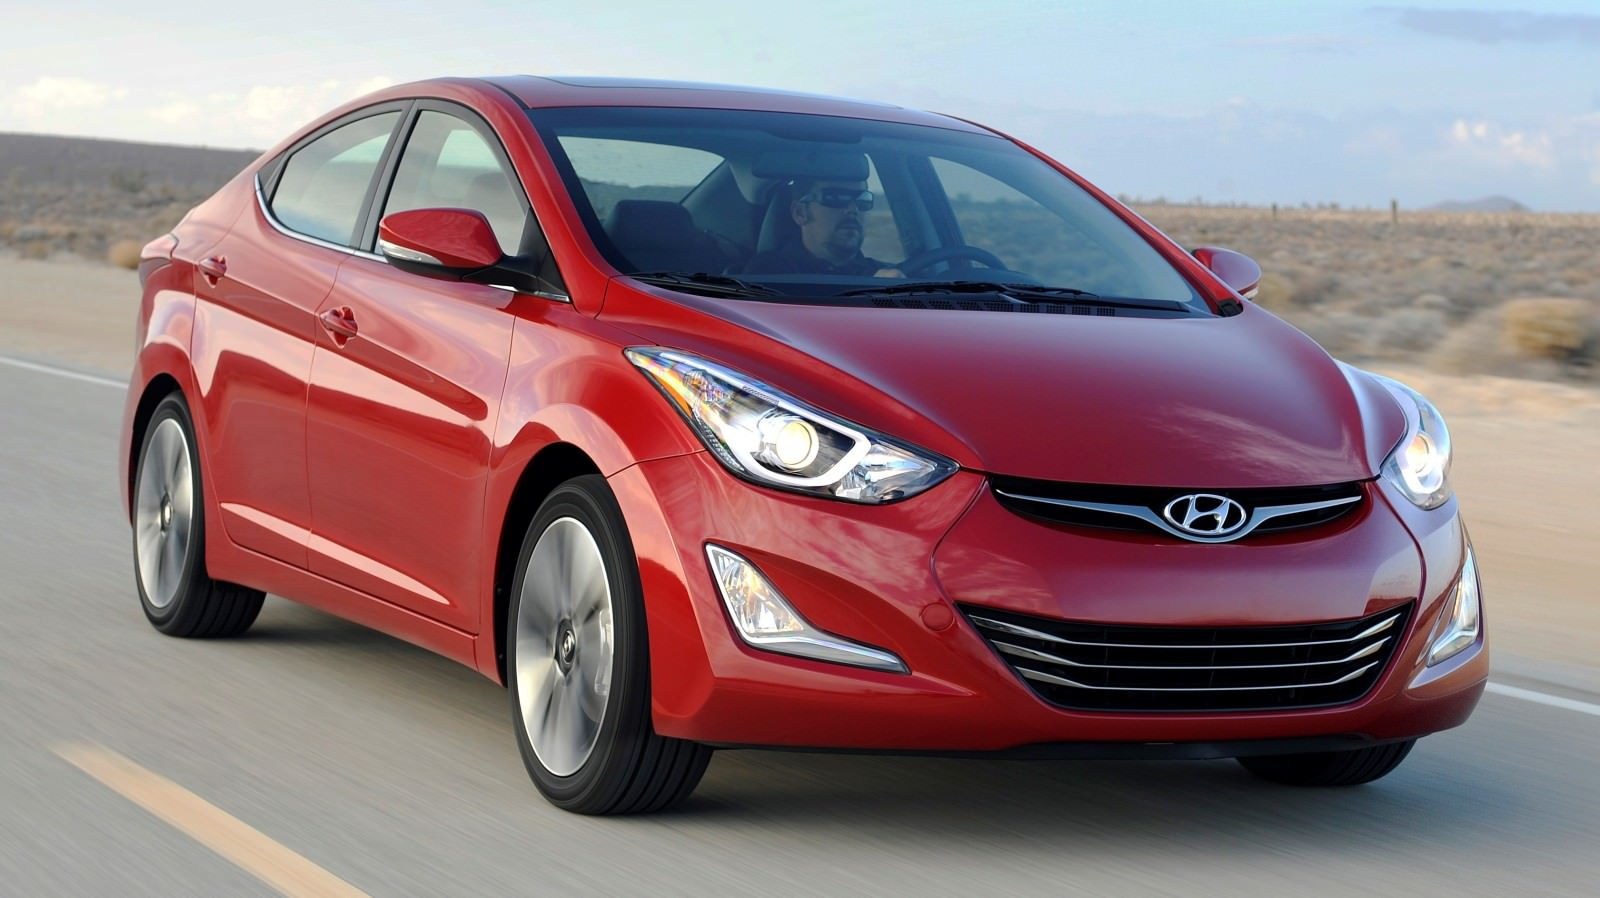 2015 Hyundai Elantra Sedan Brings Classy LED and Tech Updates  12